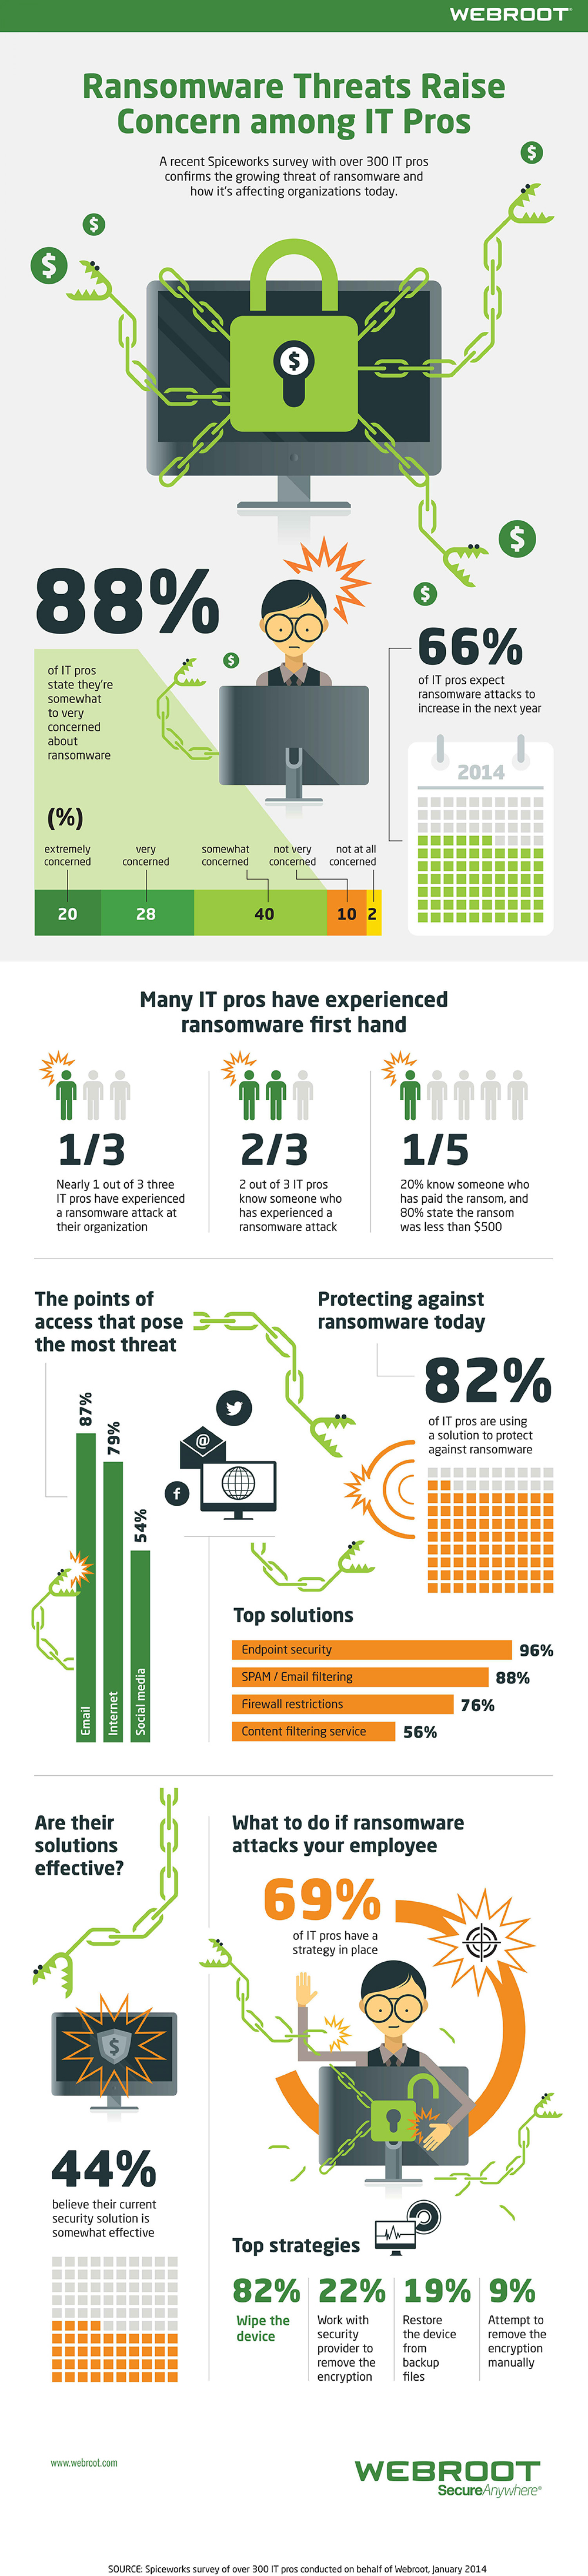 Ransomware Threats Raise Concern Among IT Pros Infographic